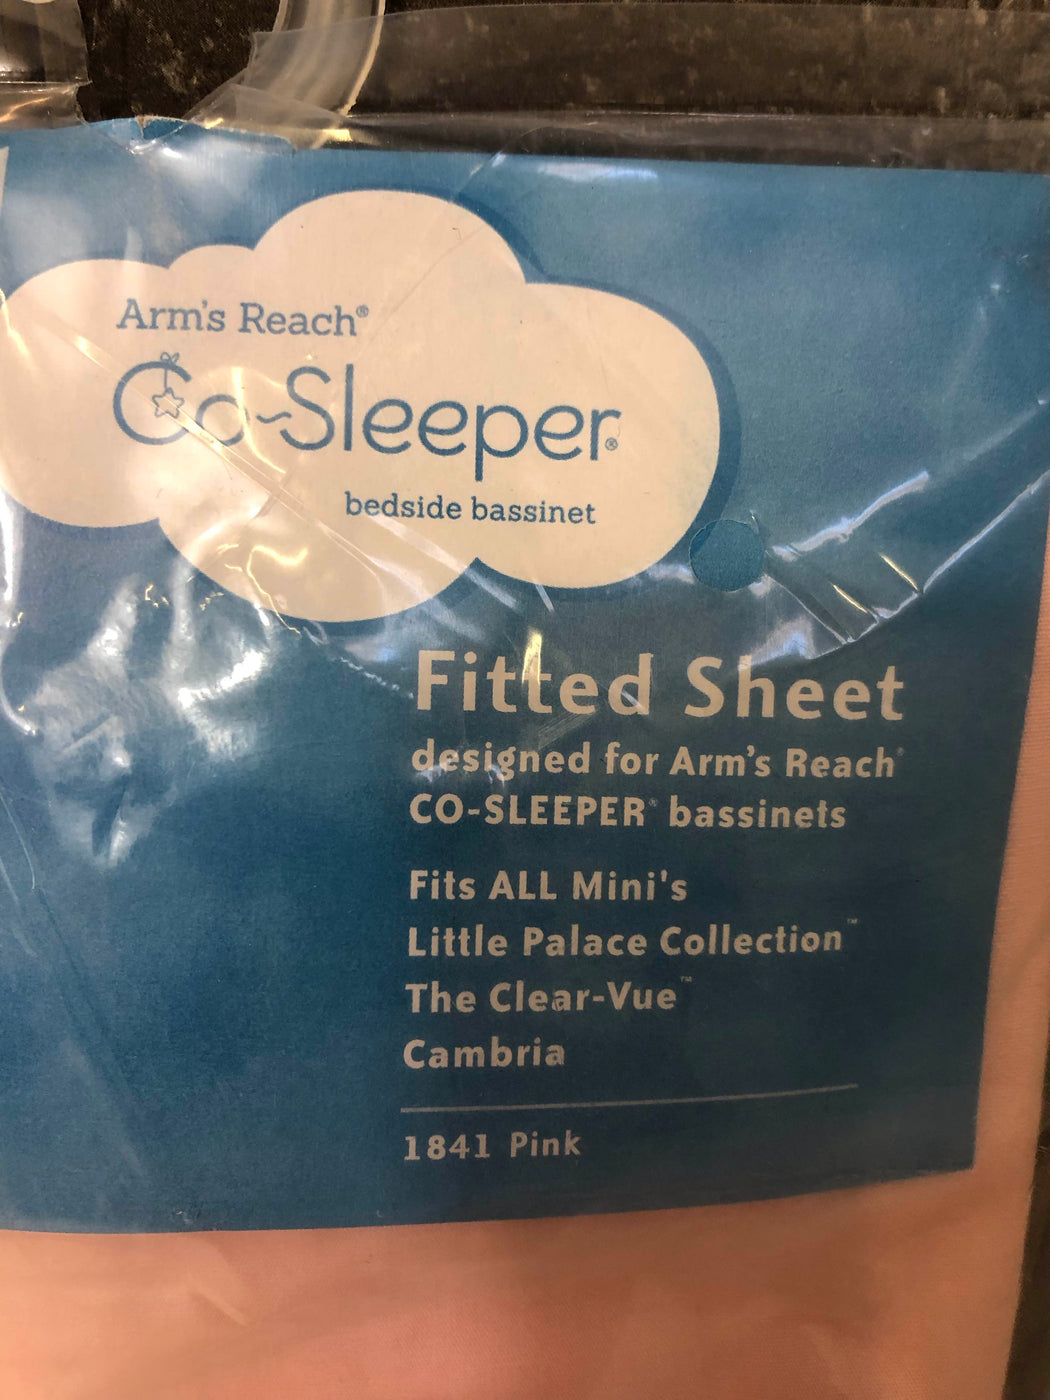 Arms Reach Mini Co-Sleeper Fitted Sheet